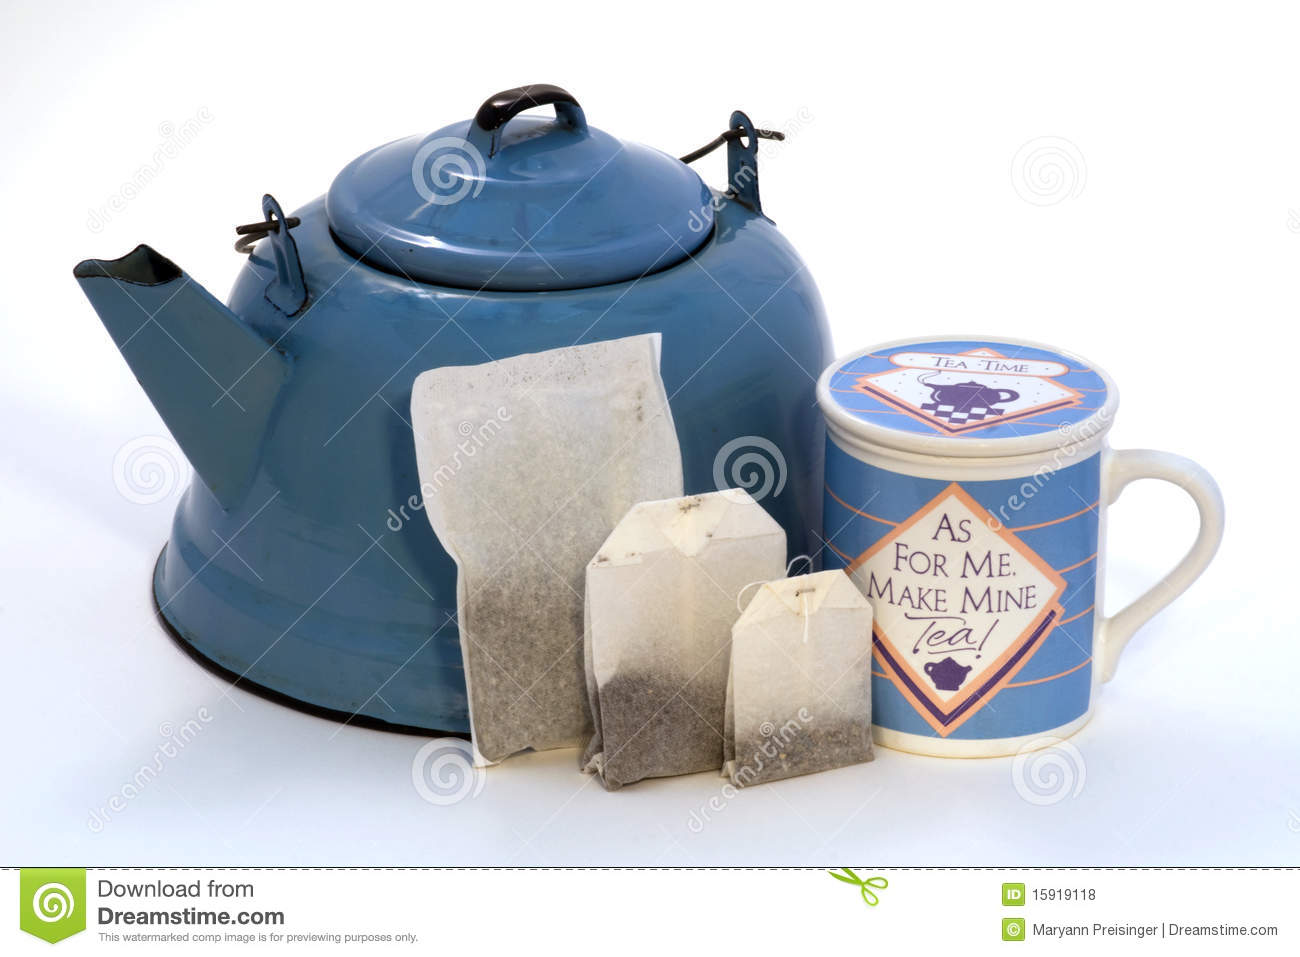 Making Tea In A Teapot Teakettle Tea Bags In Sizes Teacup With Lid Stock Photo